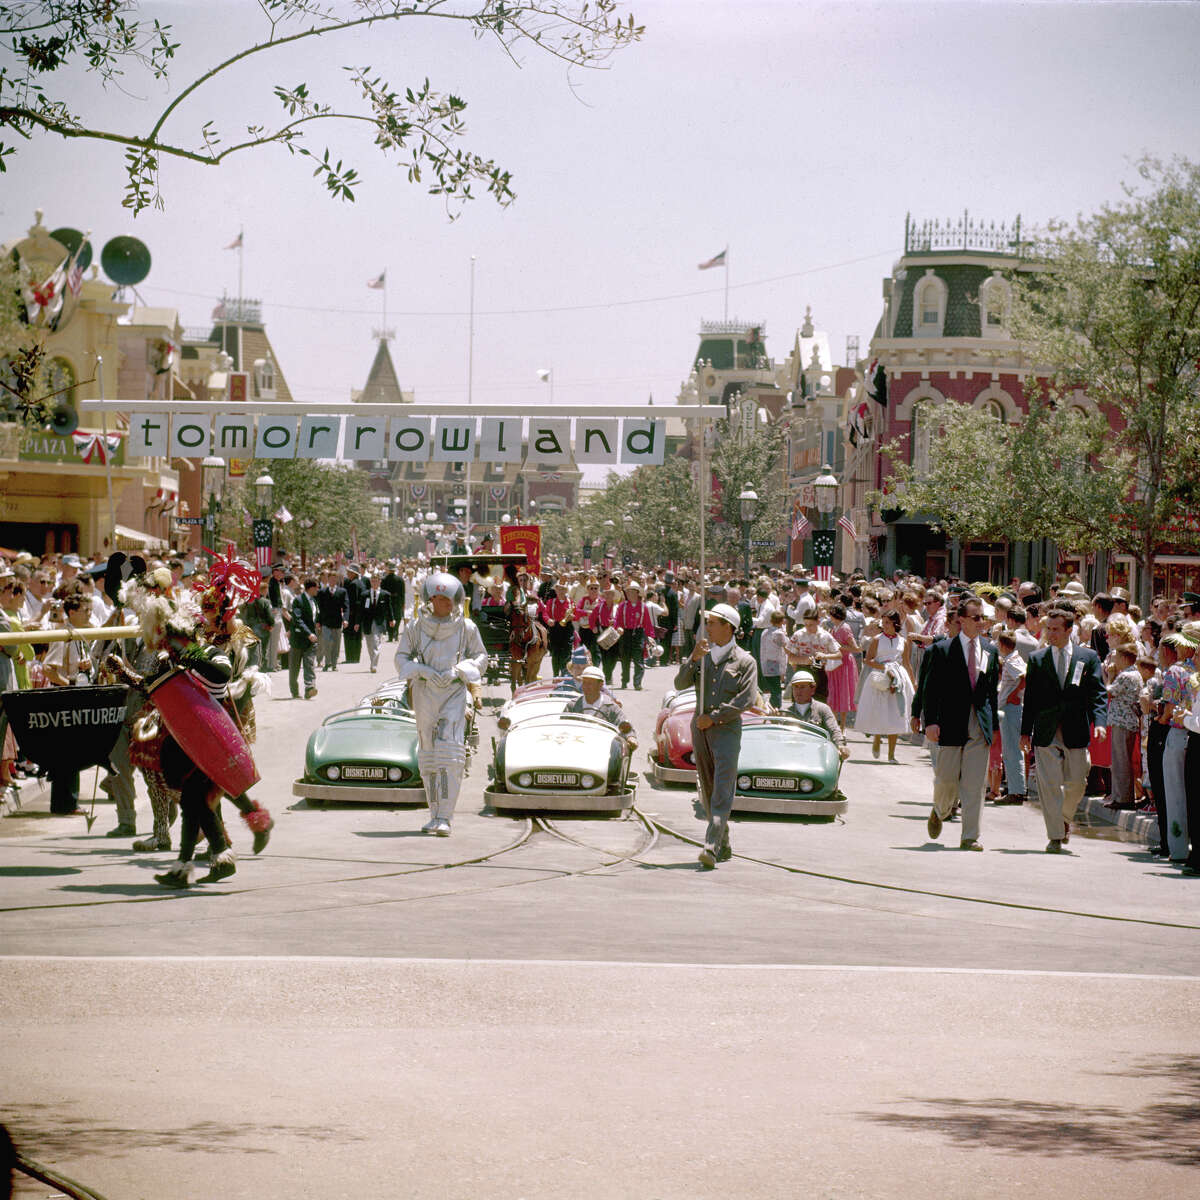 Crowds of people watch the 'Tomorrowland' portion of a parade in celebration of the opening of Disneyland Park on July 17, 1955.